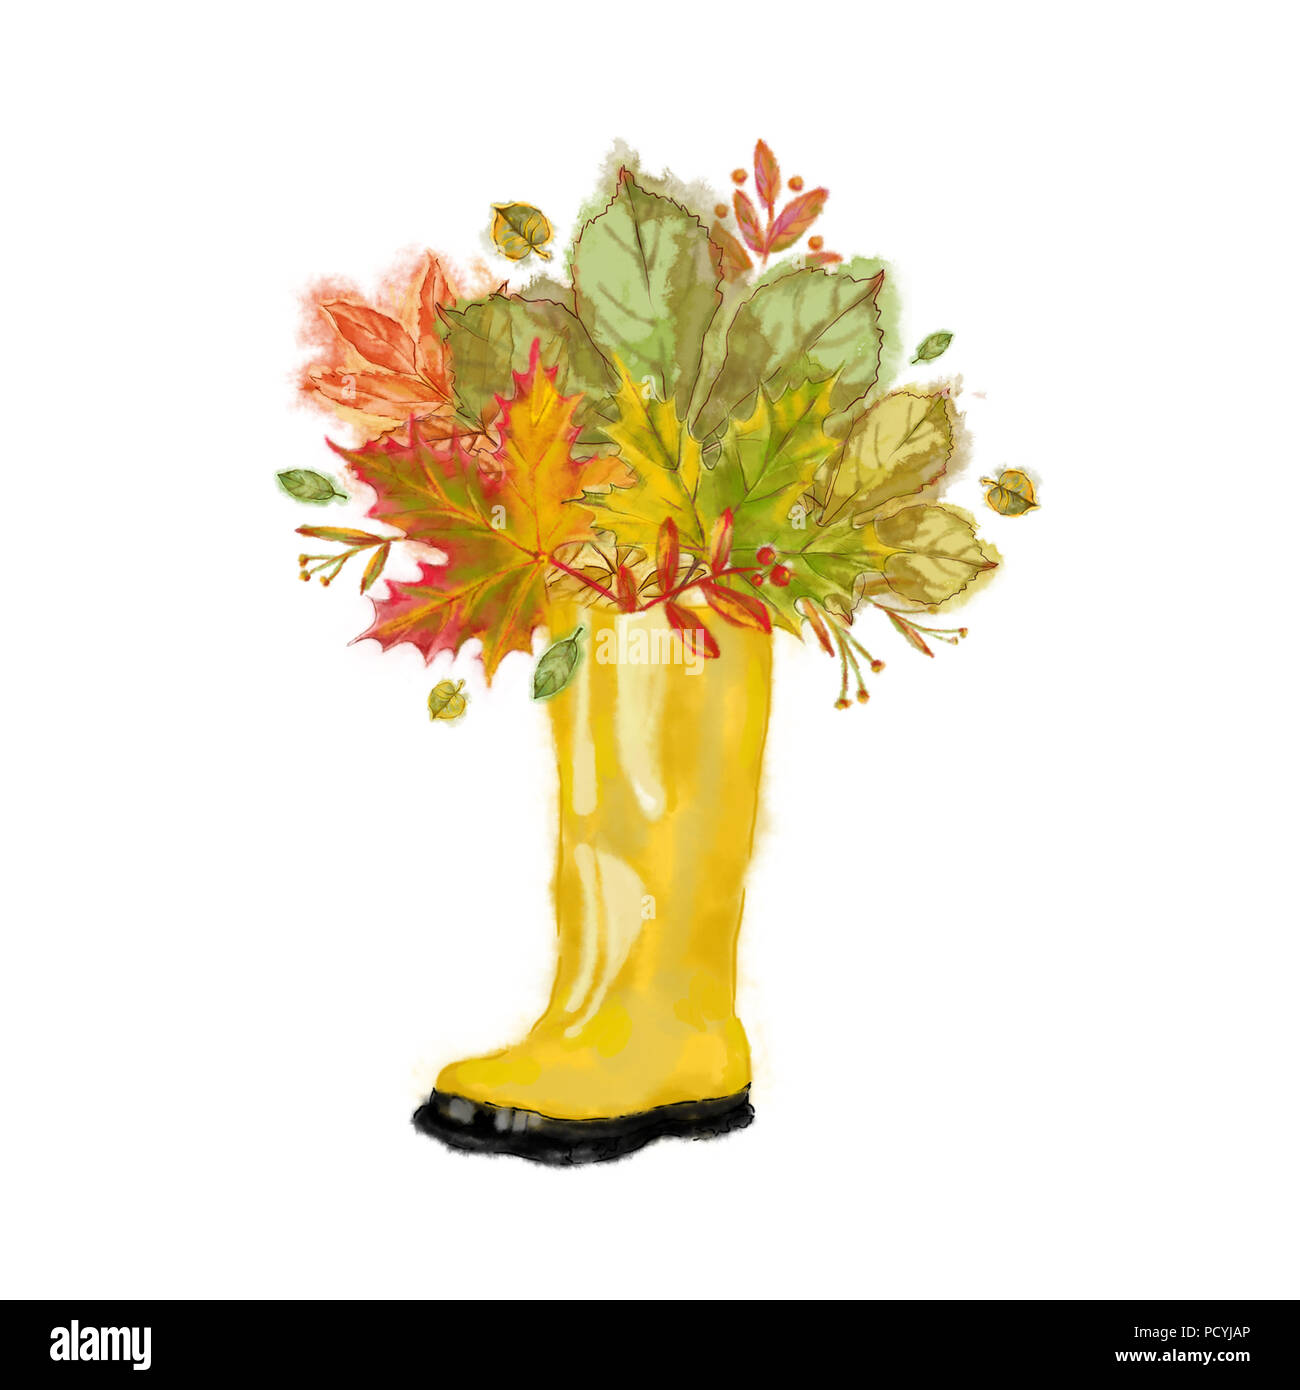 Autumn Leaves Arrangement in a Yellow Rubber Boot. Watercolor Autumnal Design Isolated on white Background. Great for Cards, Posters, Invitations etc. Stock Photo